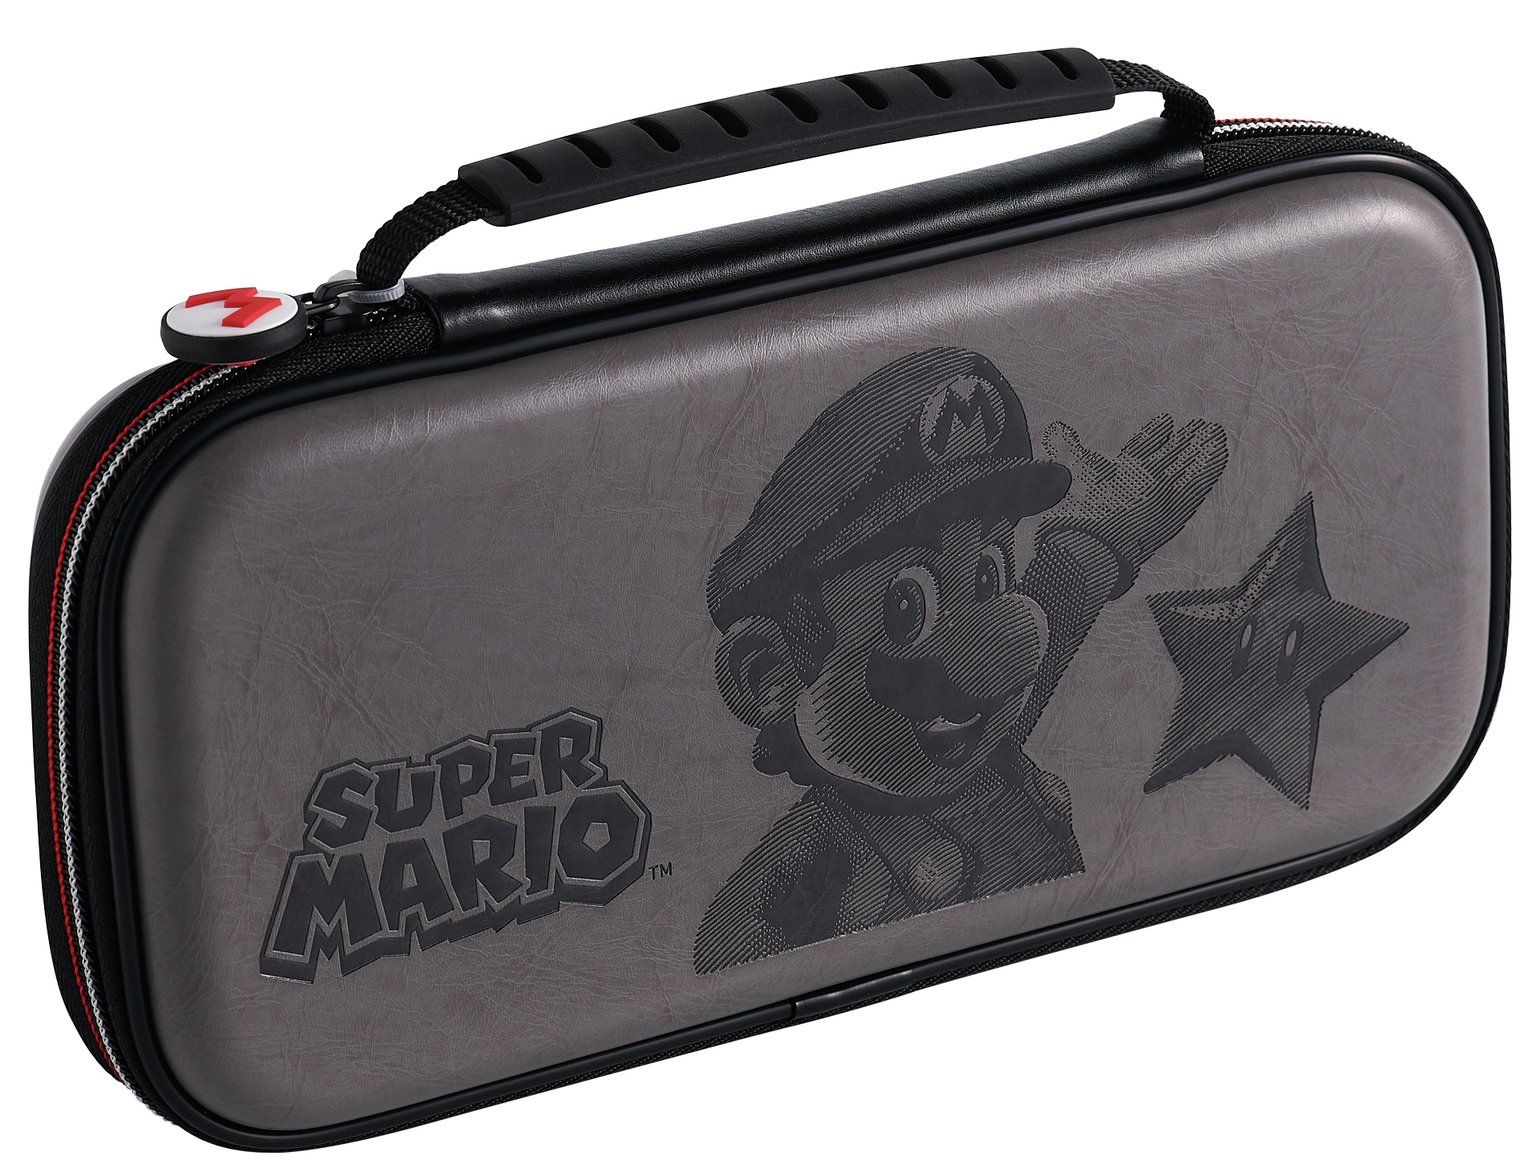 Nintendo Switch Deluxe Travel Case - Mario